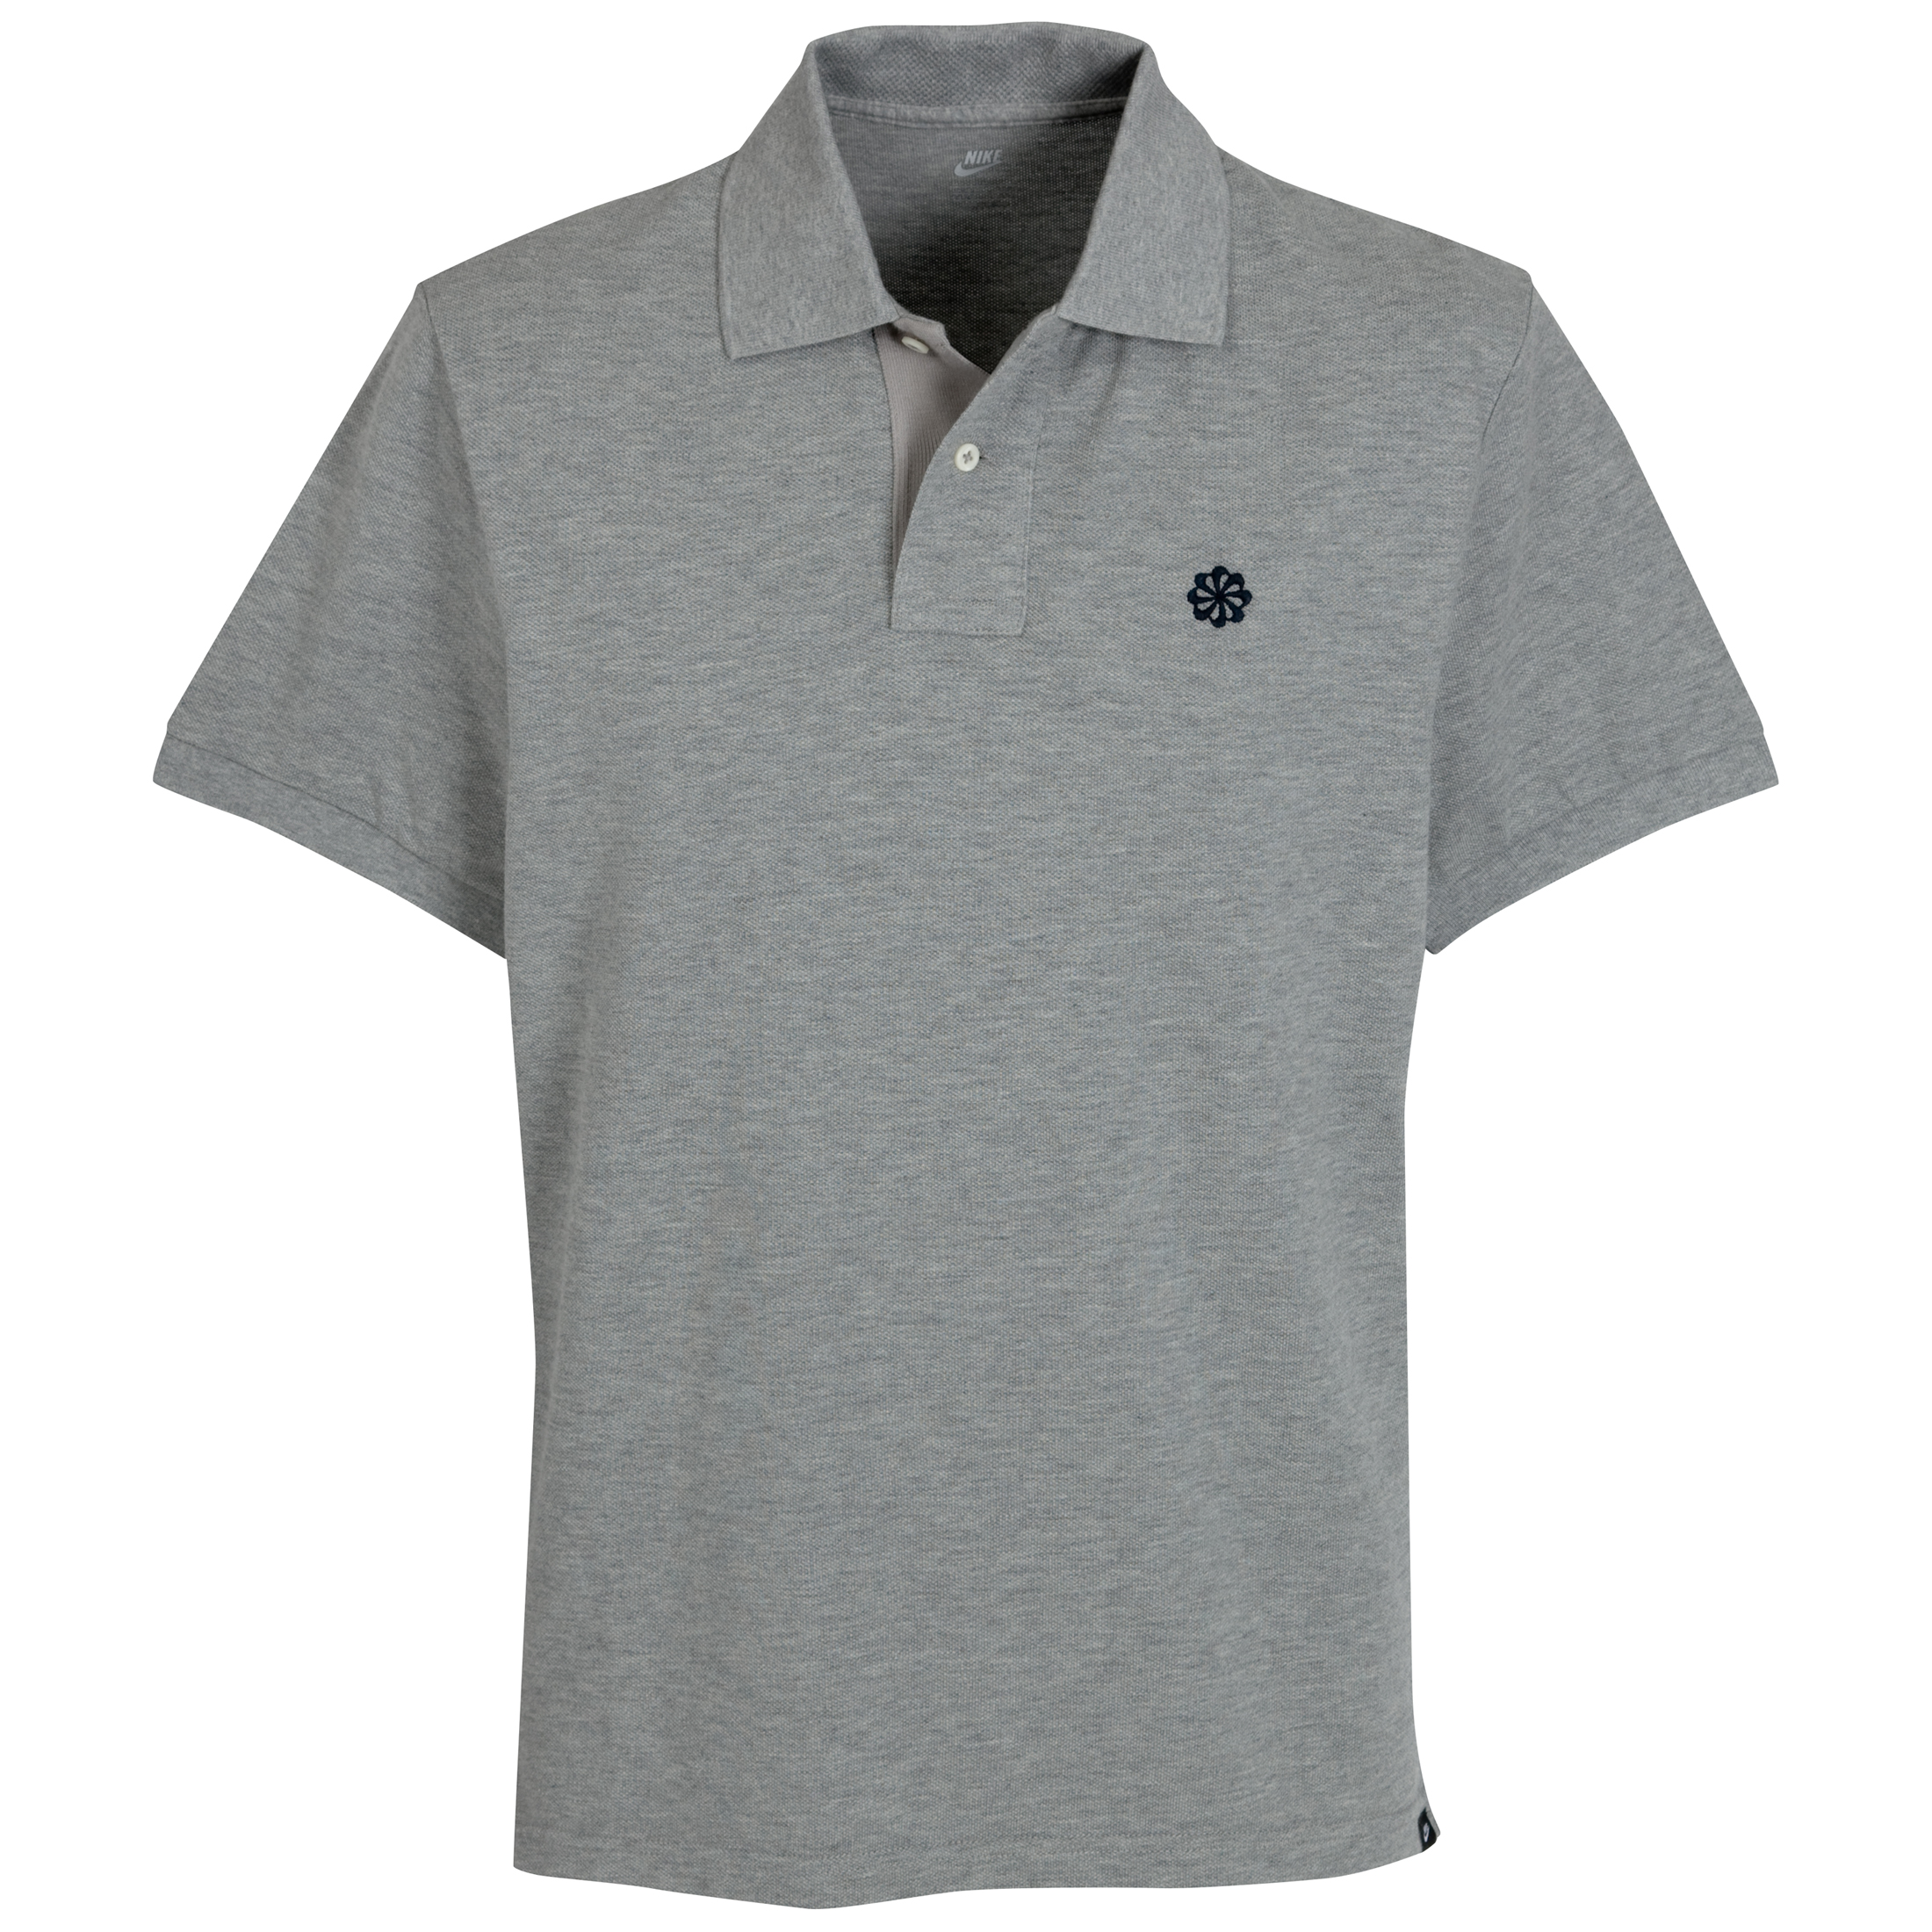 Nike Grand Slam Pique Polo Shirt - Dark Grey Heather/Dark Obsidian